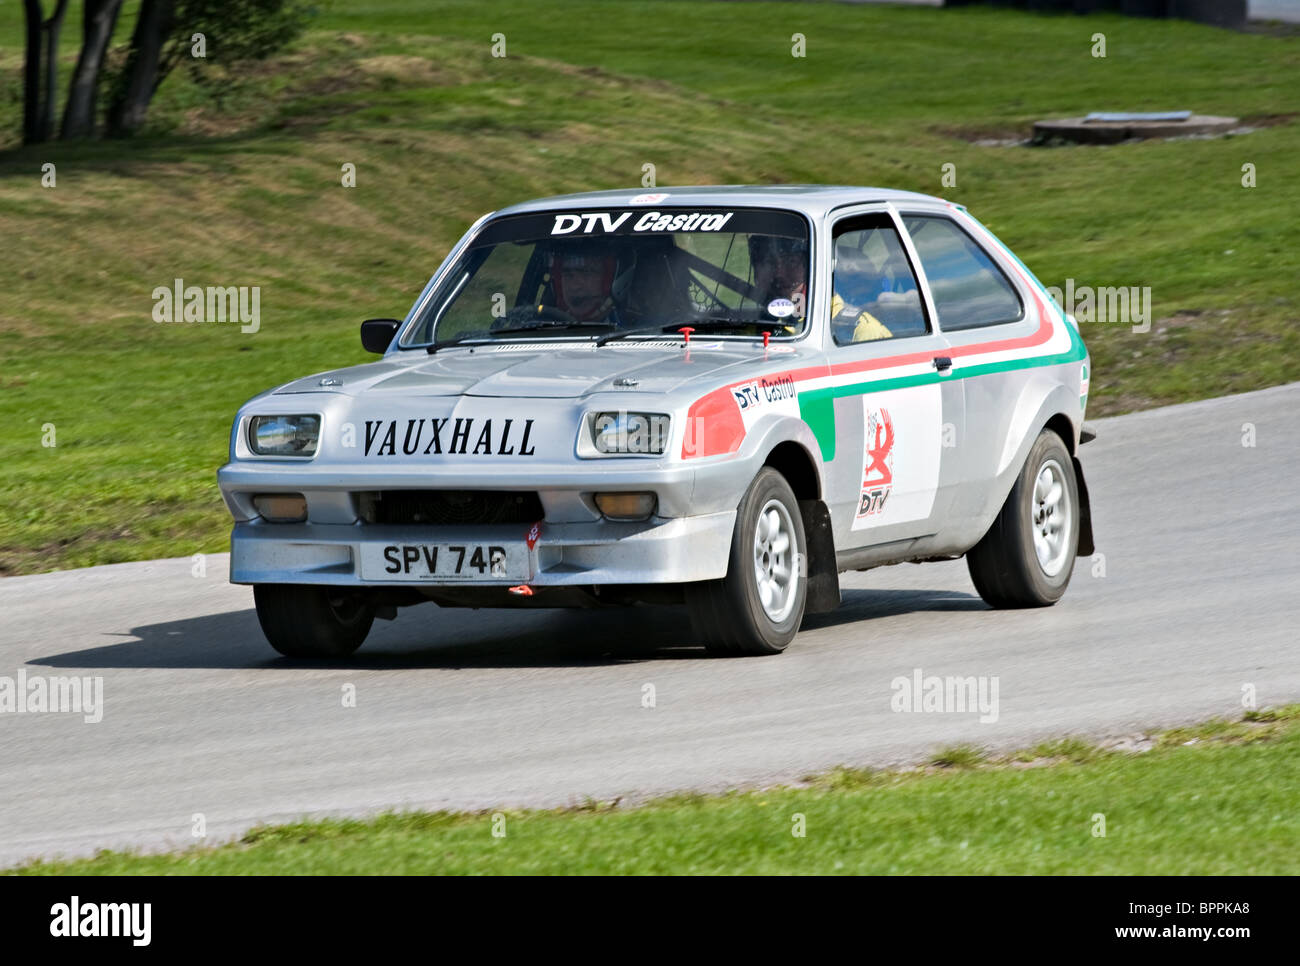 Vauxhall Chevette Stock Photos & Vauxhall Chevette Stock Images - Alamy